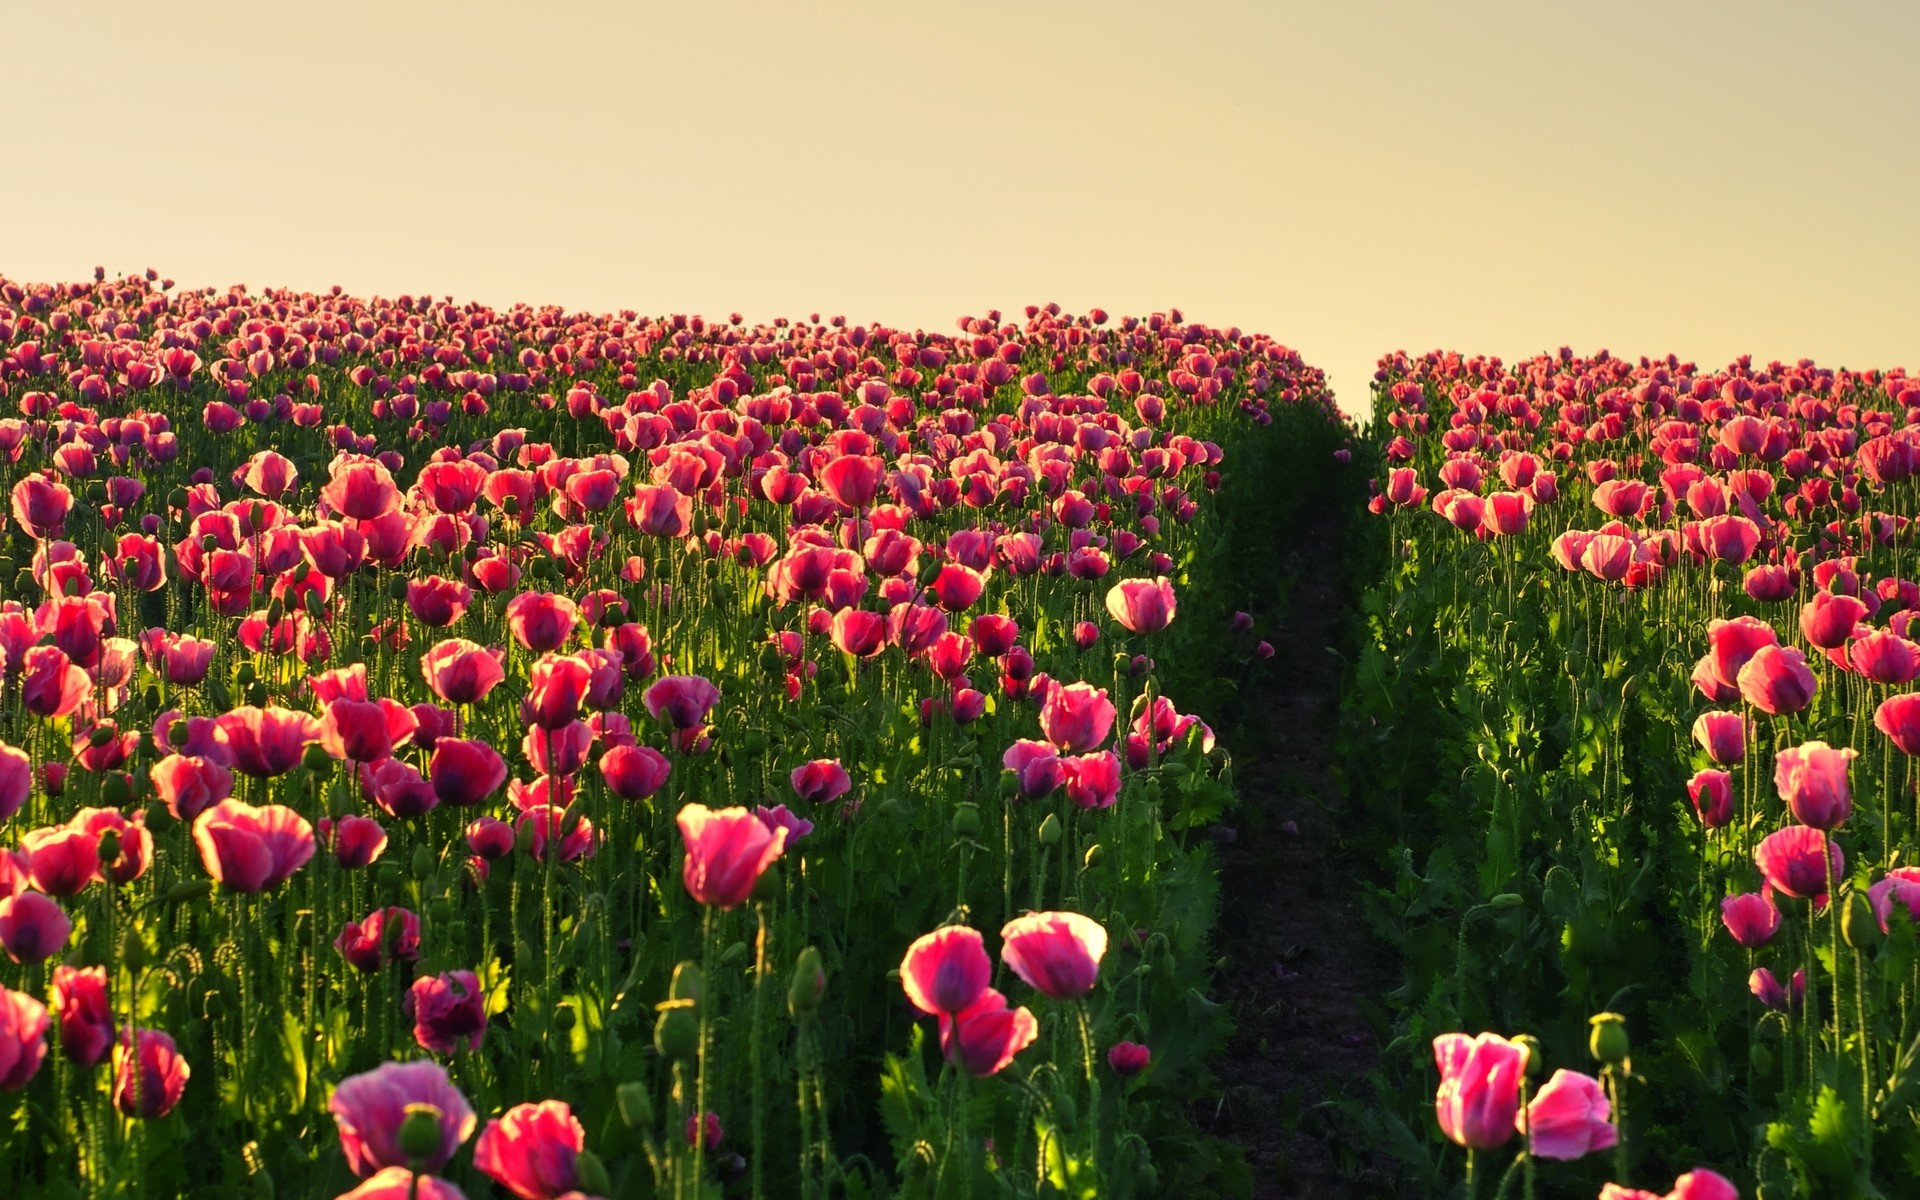 Flower Field Wallpaper